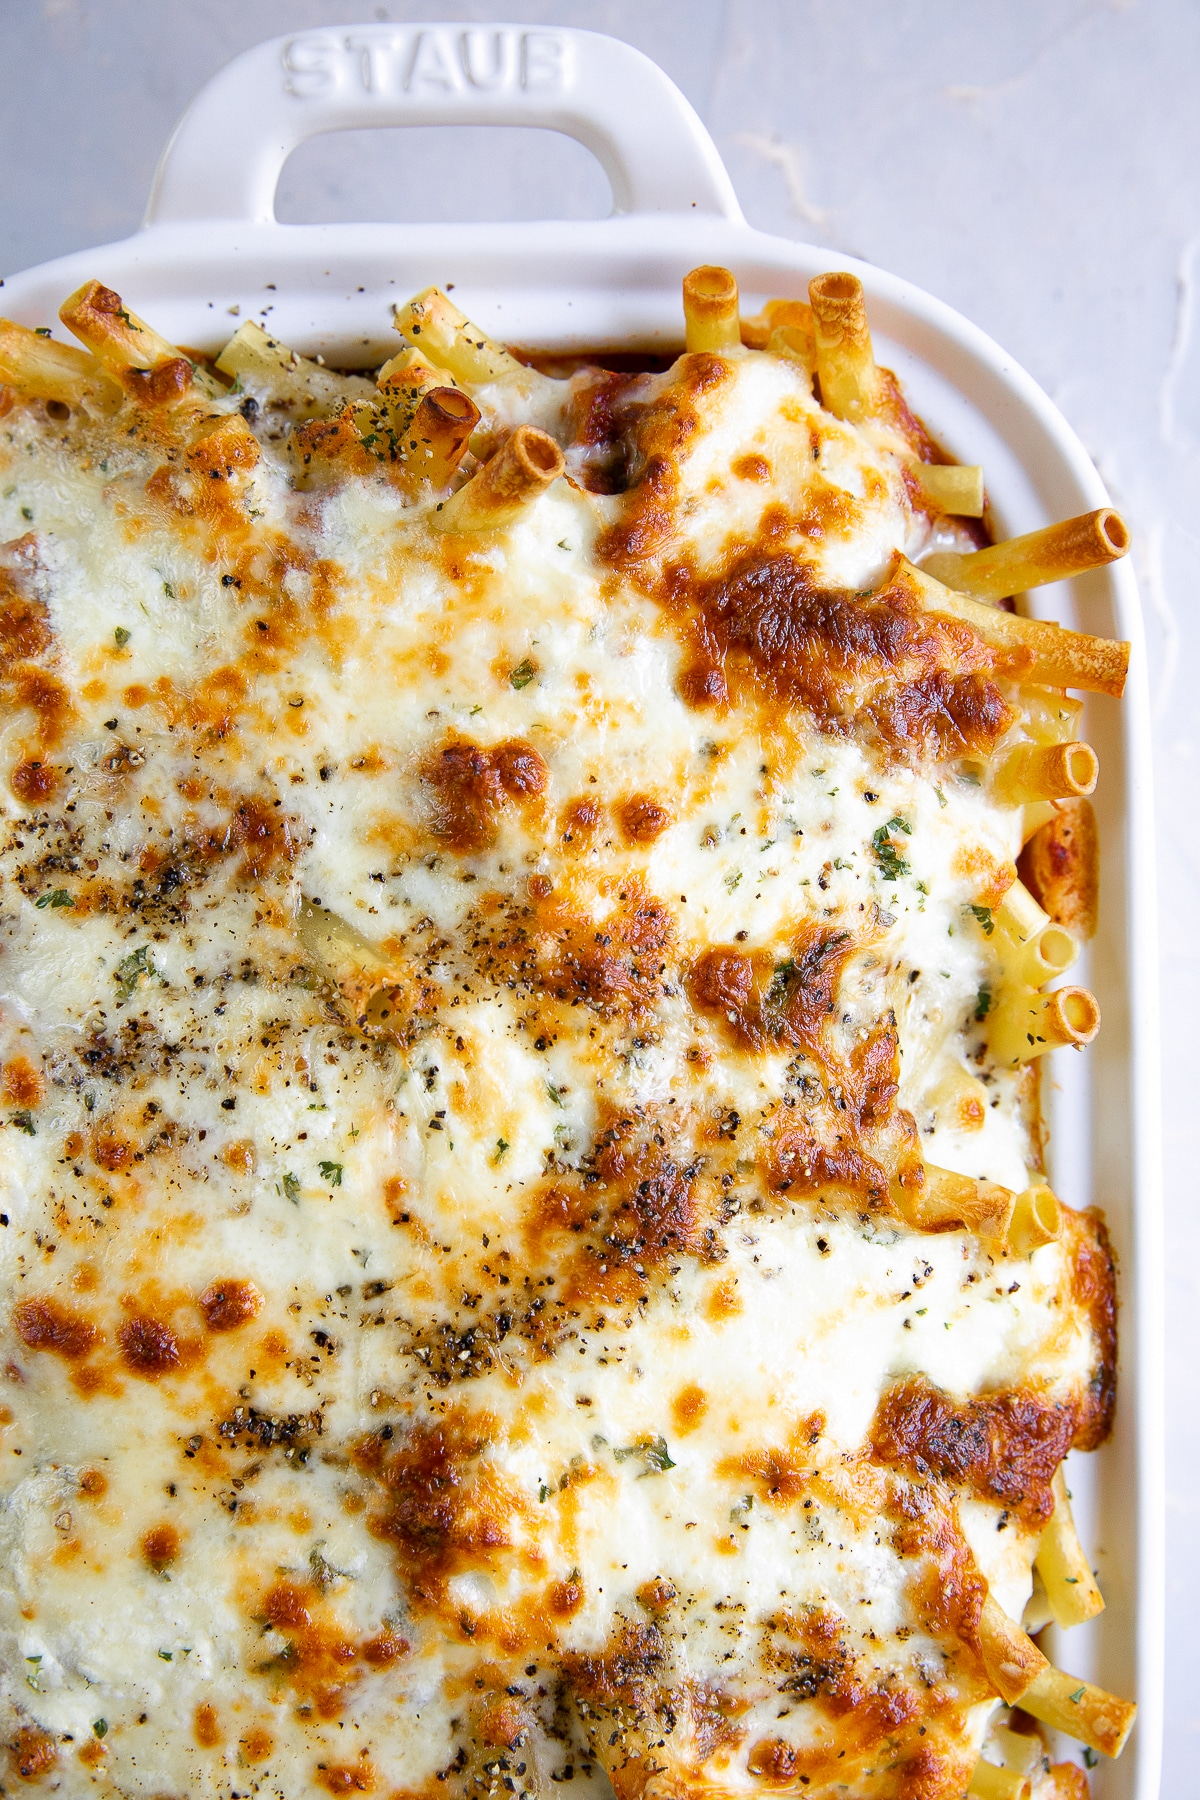 A baked ziti dish covered in cheese